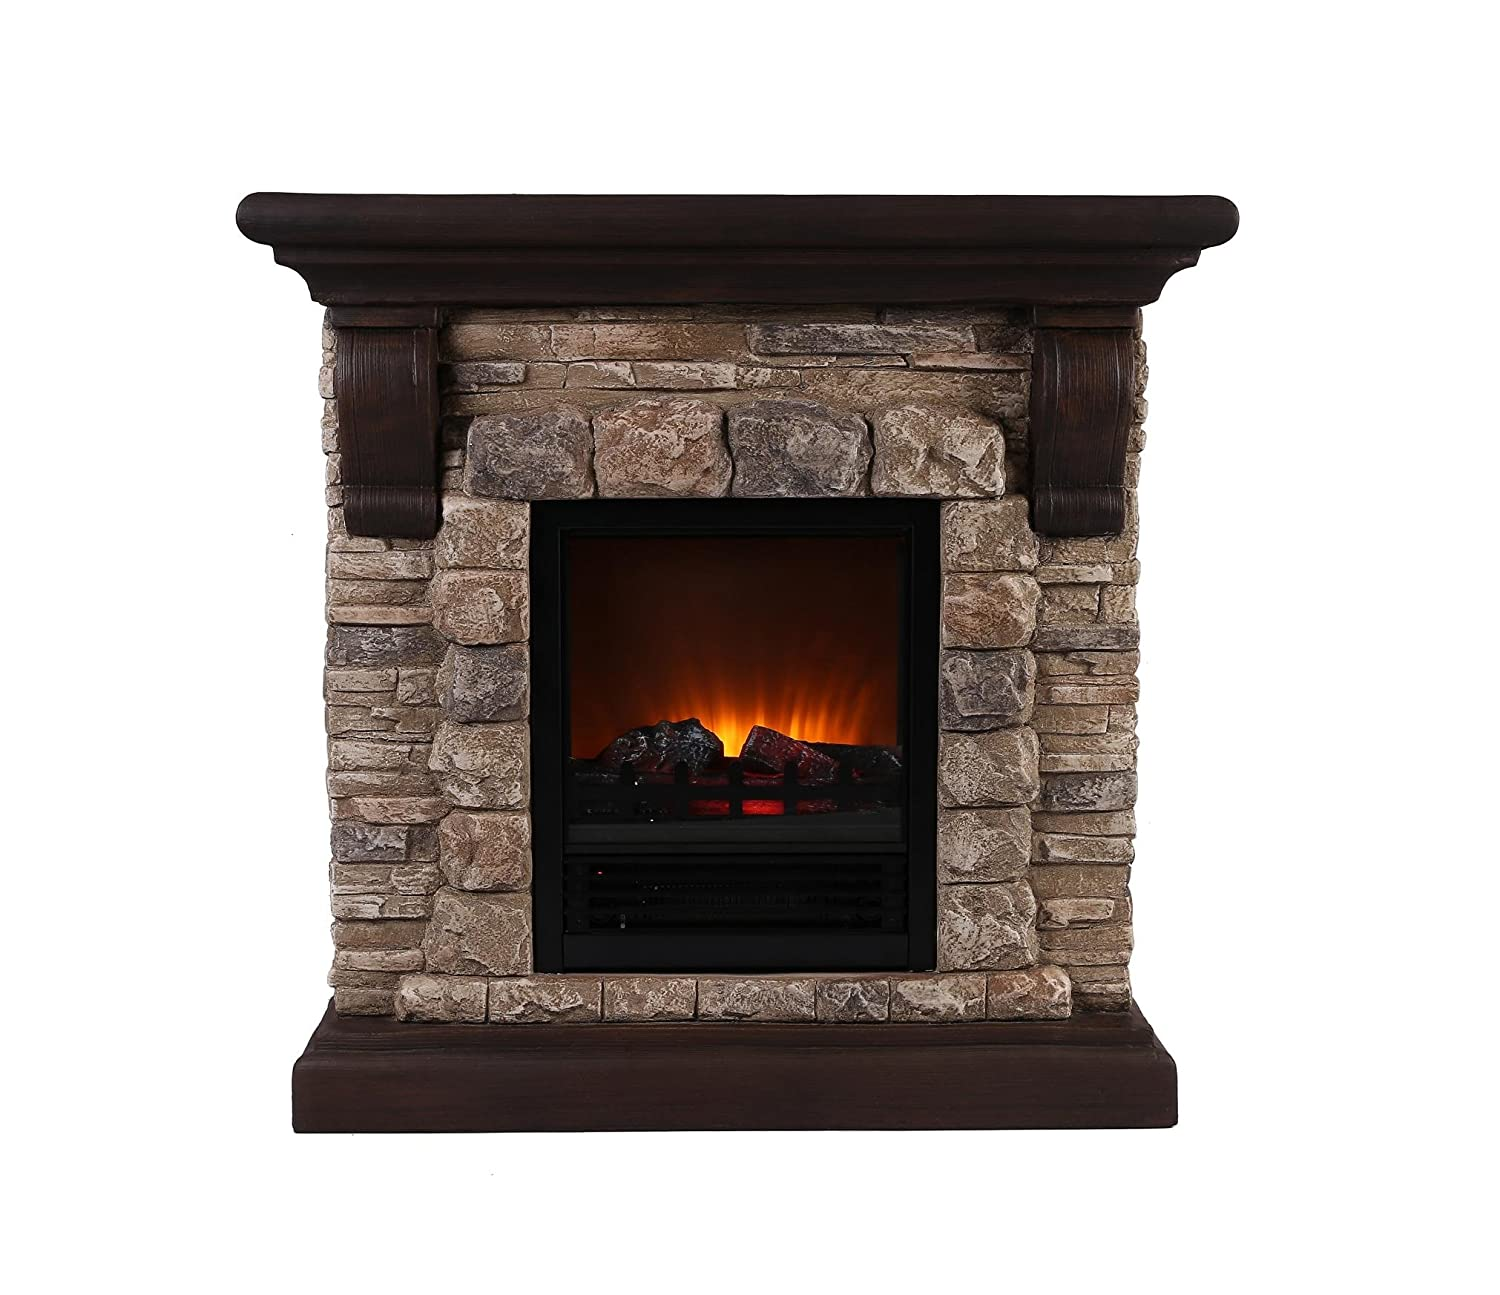 Amazon.com: OK Lighting Portable Fireplace with Faux Stone Dark ...